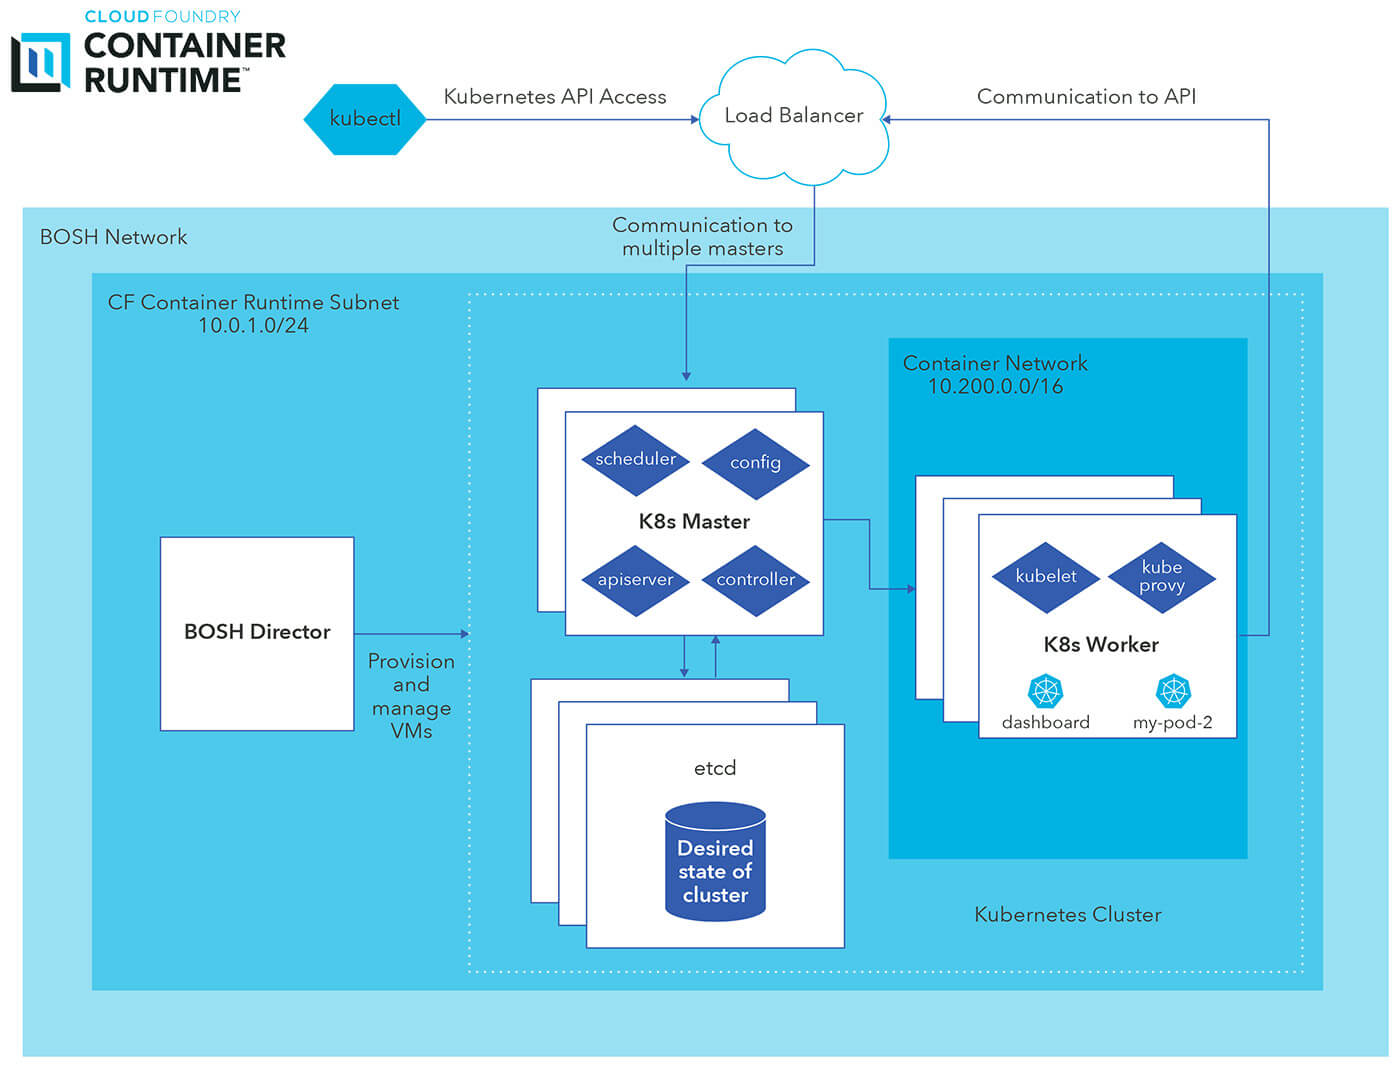 Cloud Foundry Container Runtime Diagram